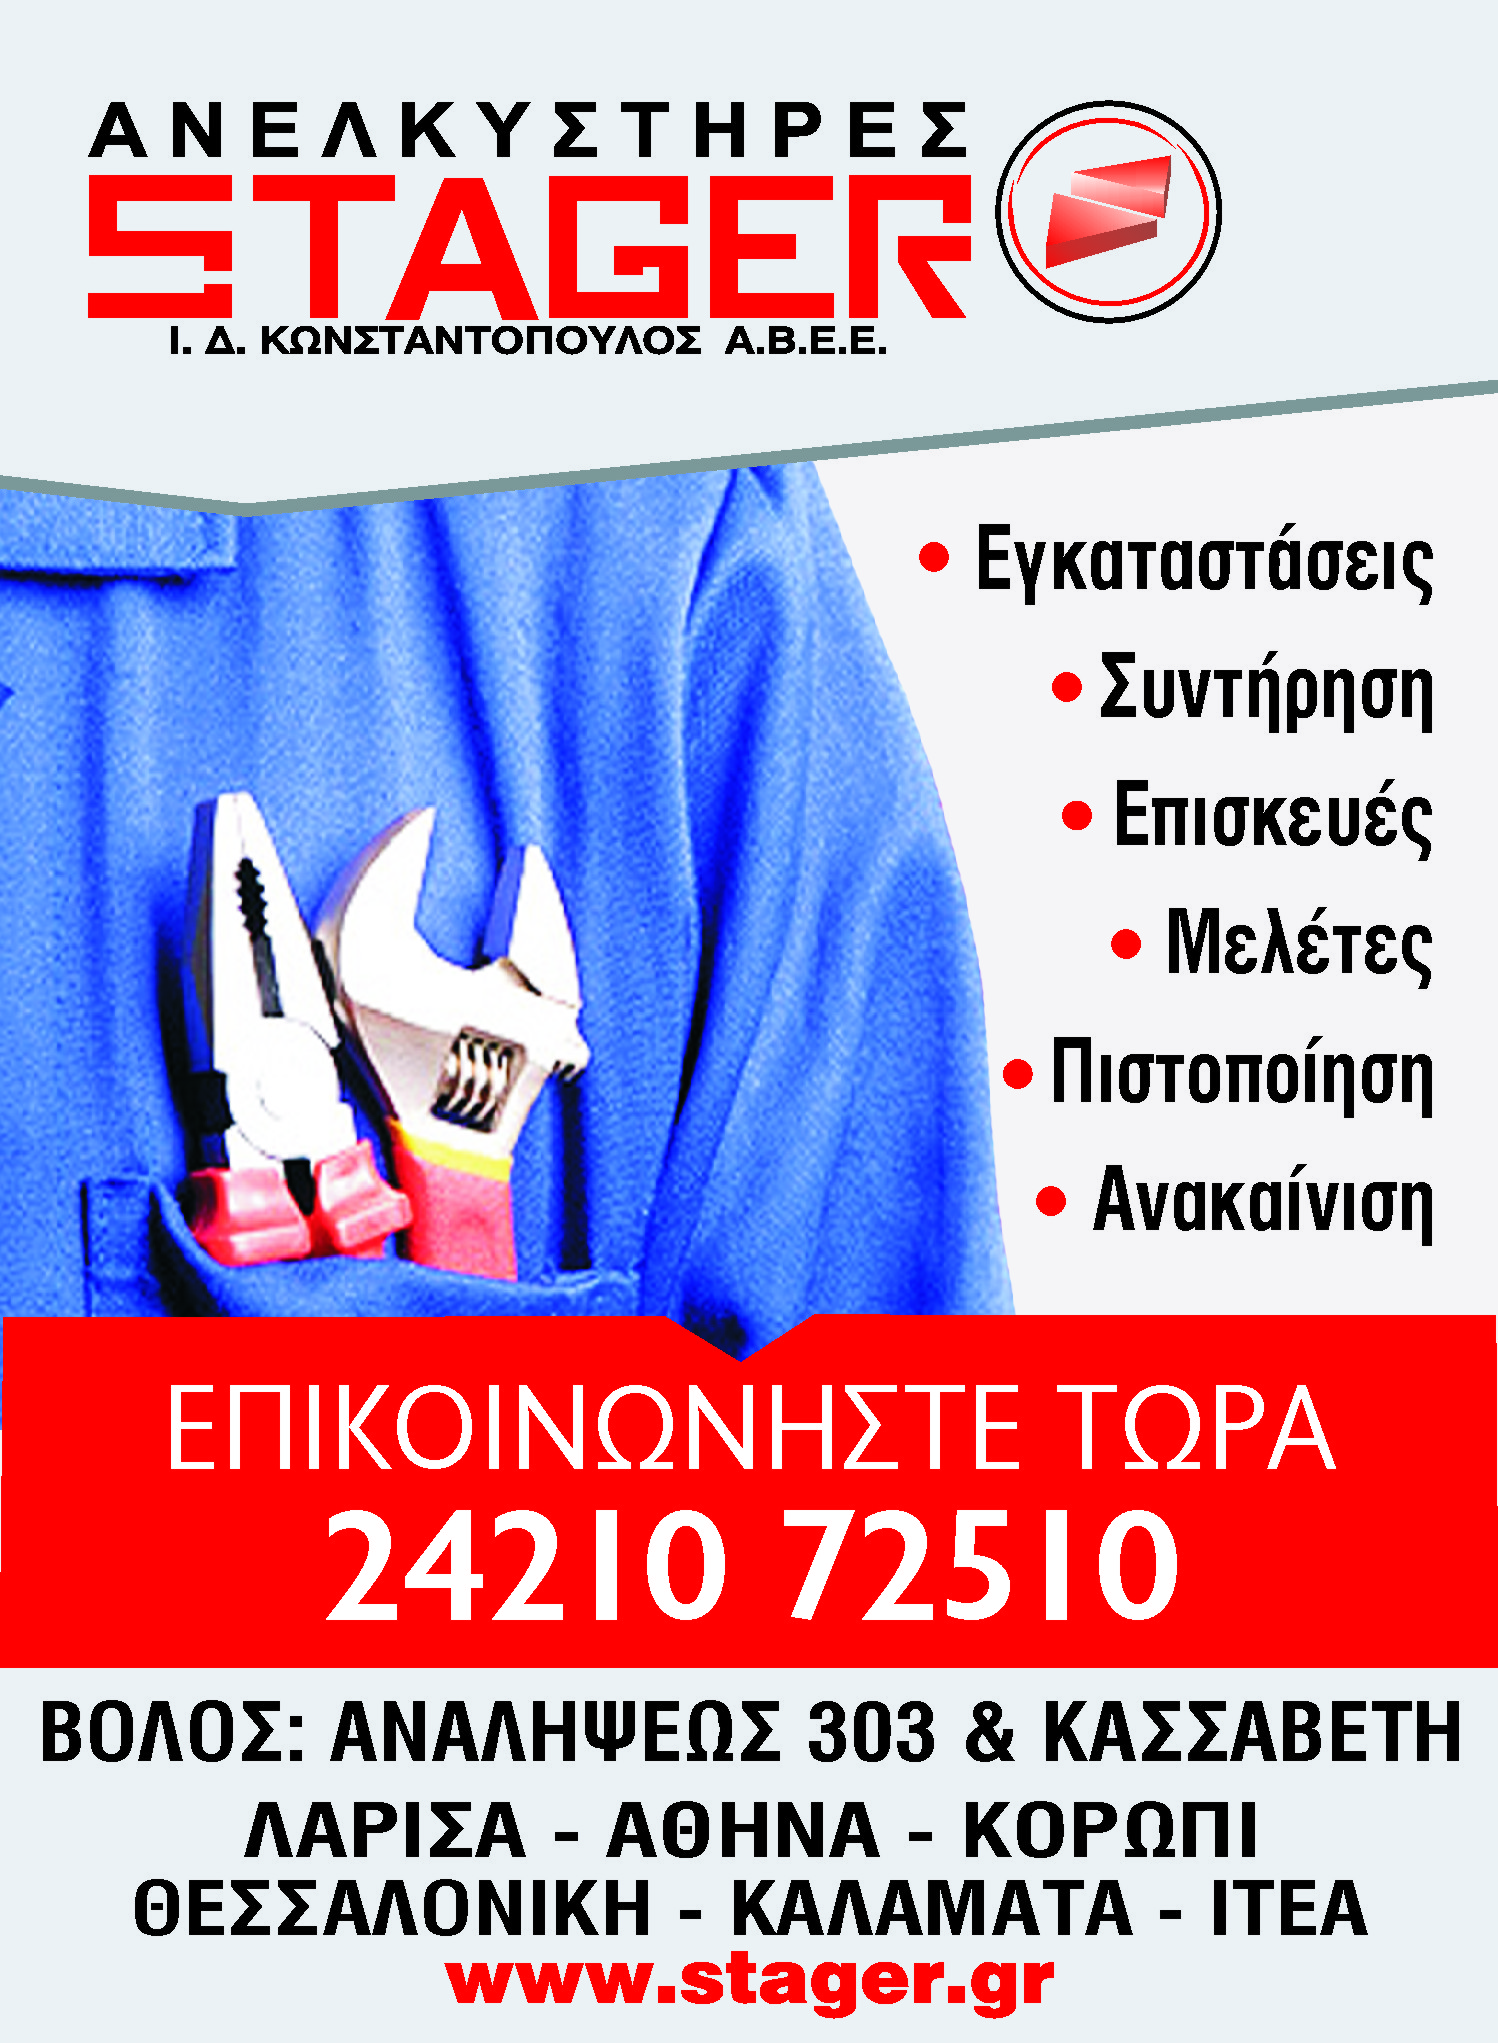 http://www.stager.gr/index.php/gr/